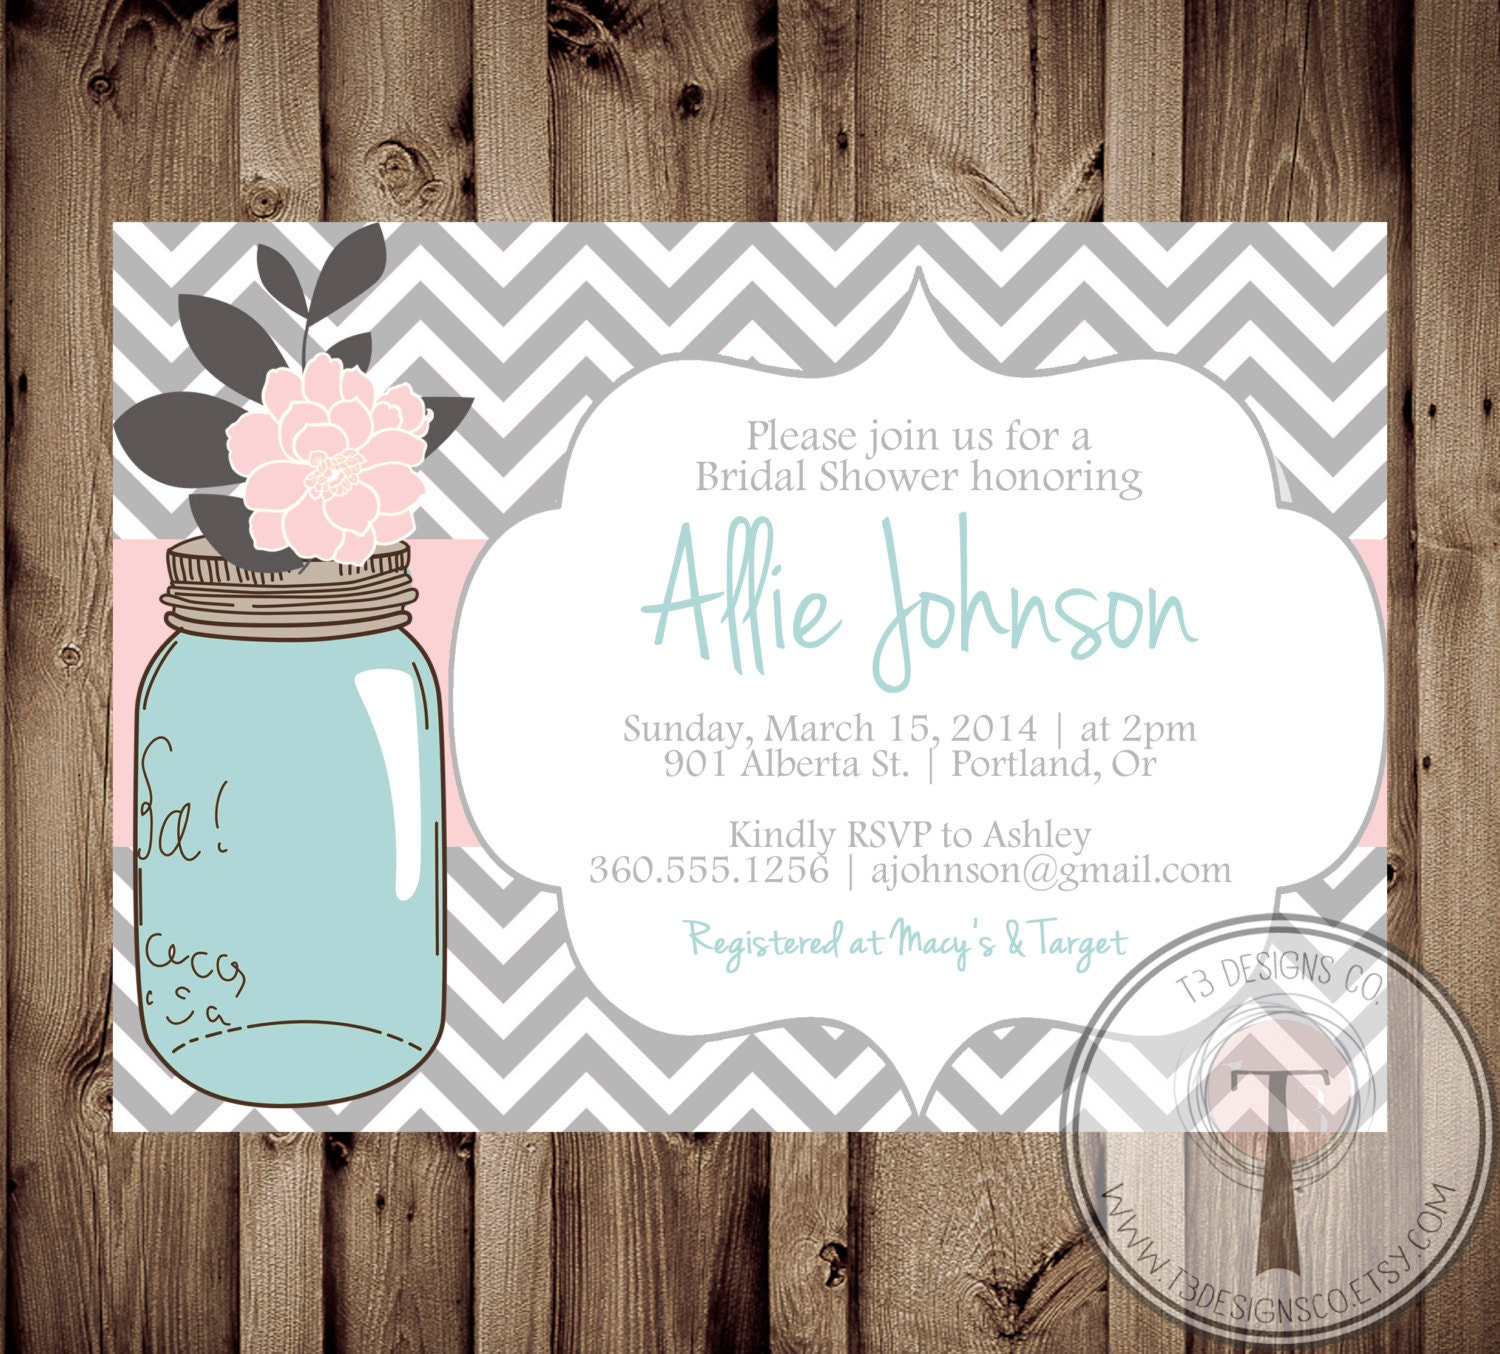 mason jar invitation bridal shower invitation wedding shower mason jars chalkboard invite invitation